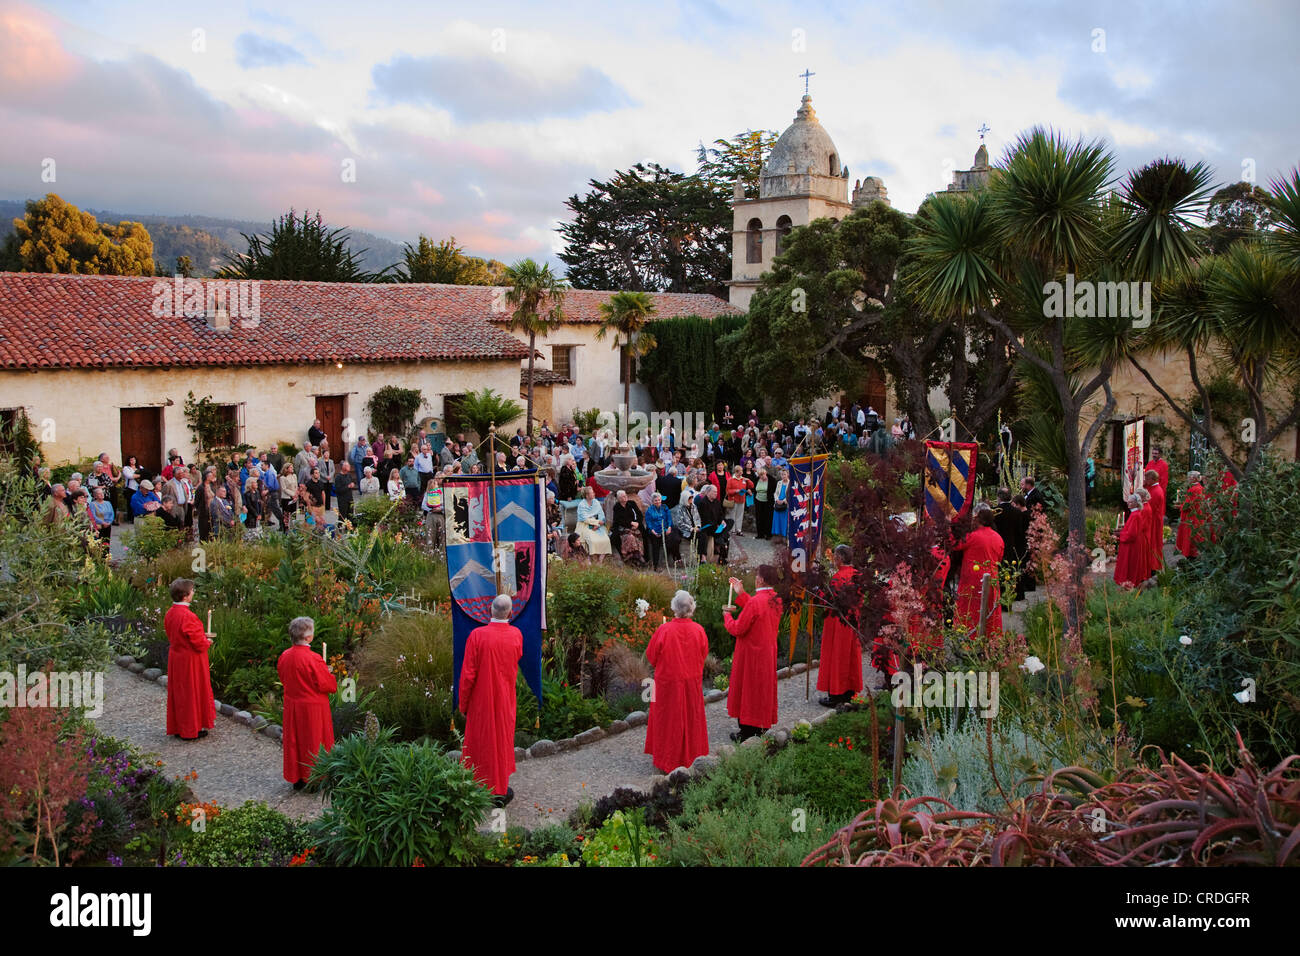 Church members carry banners while musicians play classical music during the CARMEL BACH FESTIVAL, USA, California, - Stock Image